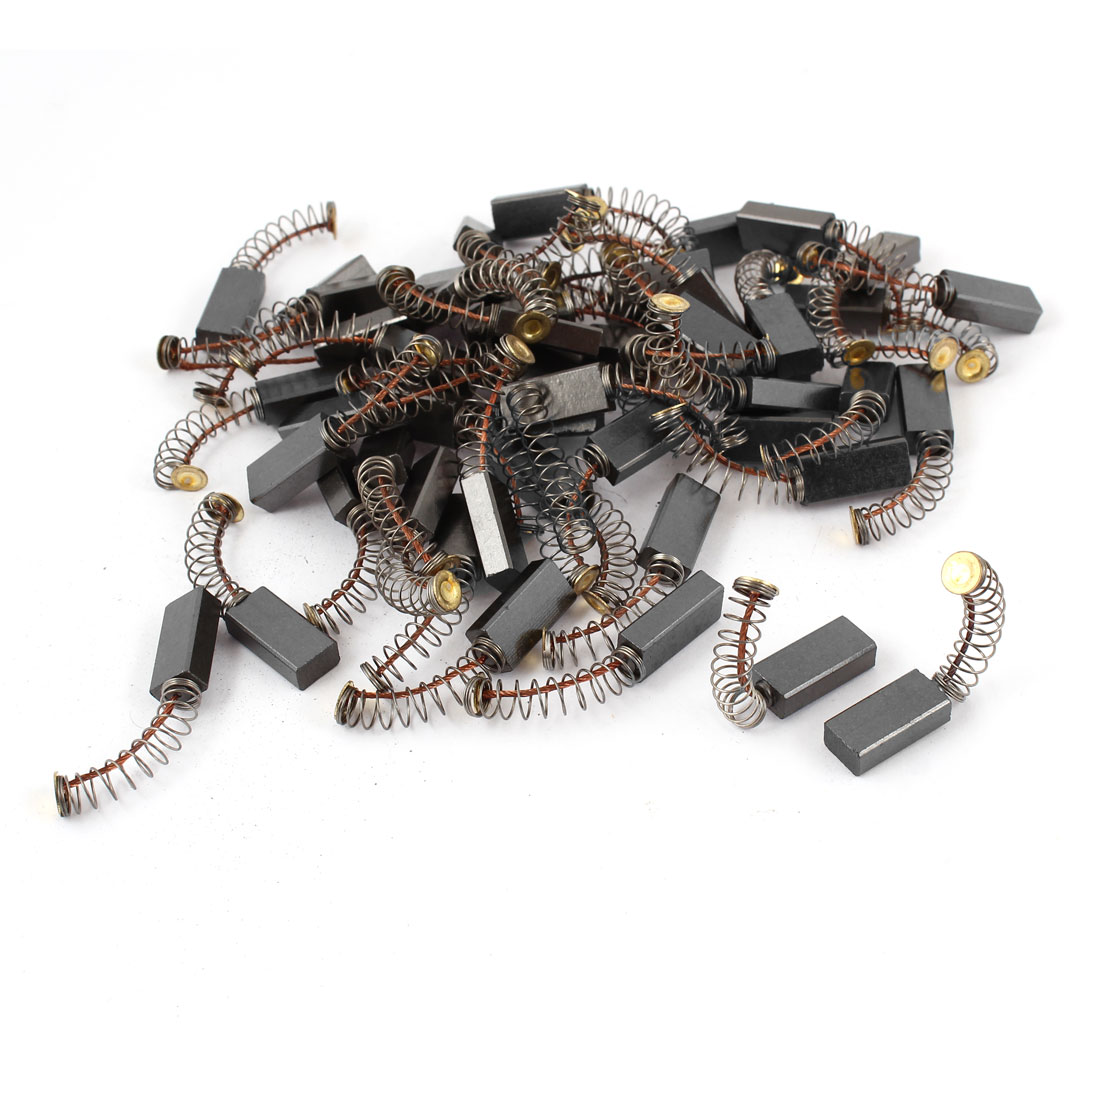 30 Pcs 17mm x 8mm x 5mm Carbon Brushes for Generic Electric Motor